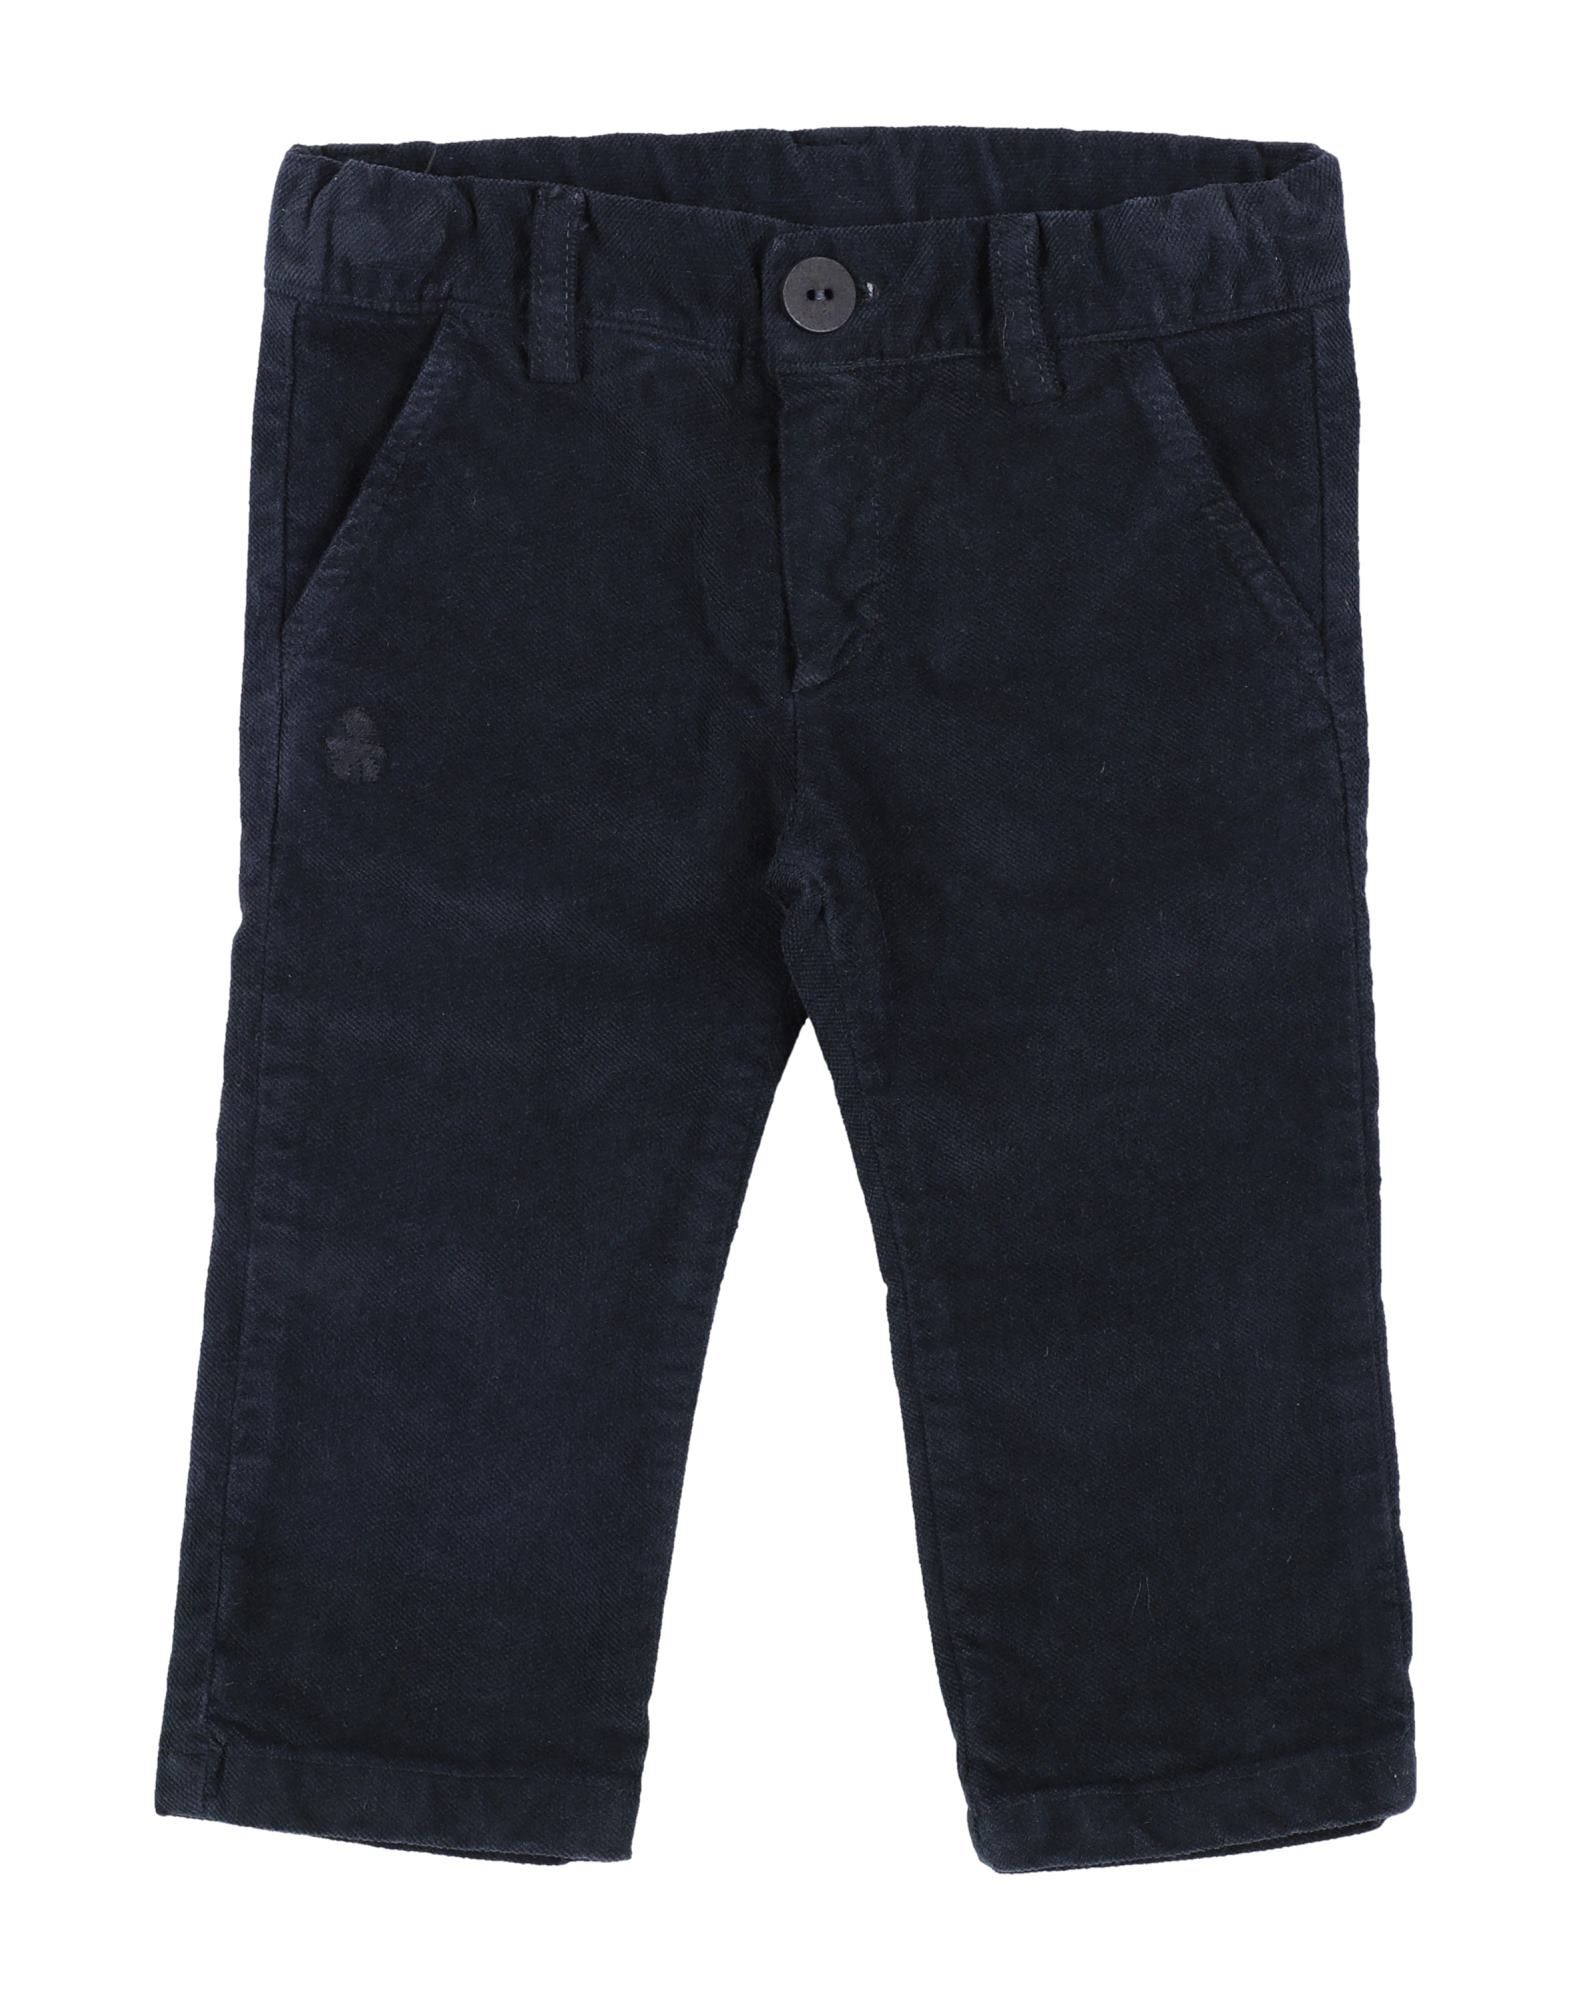 Le Bebé Kids' Casual Pants In Black